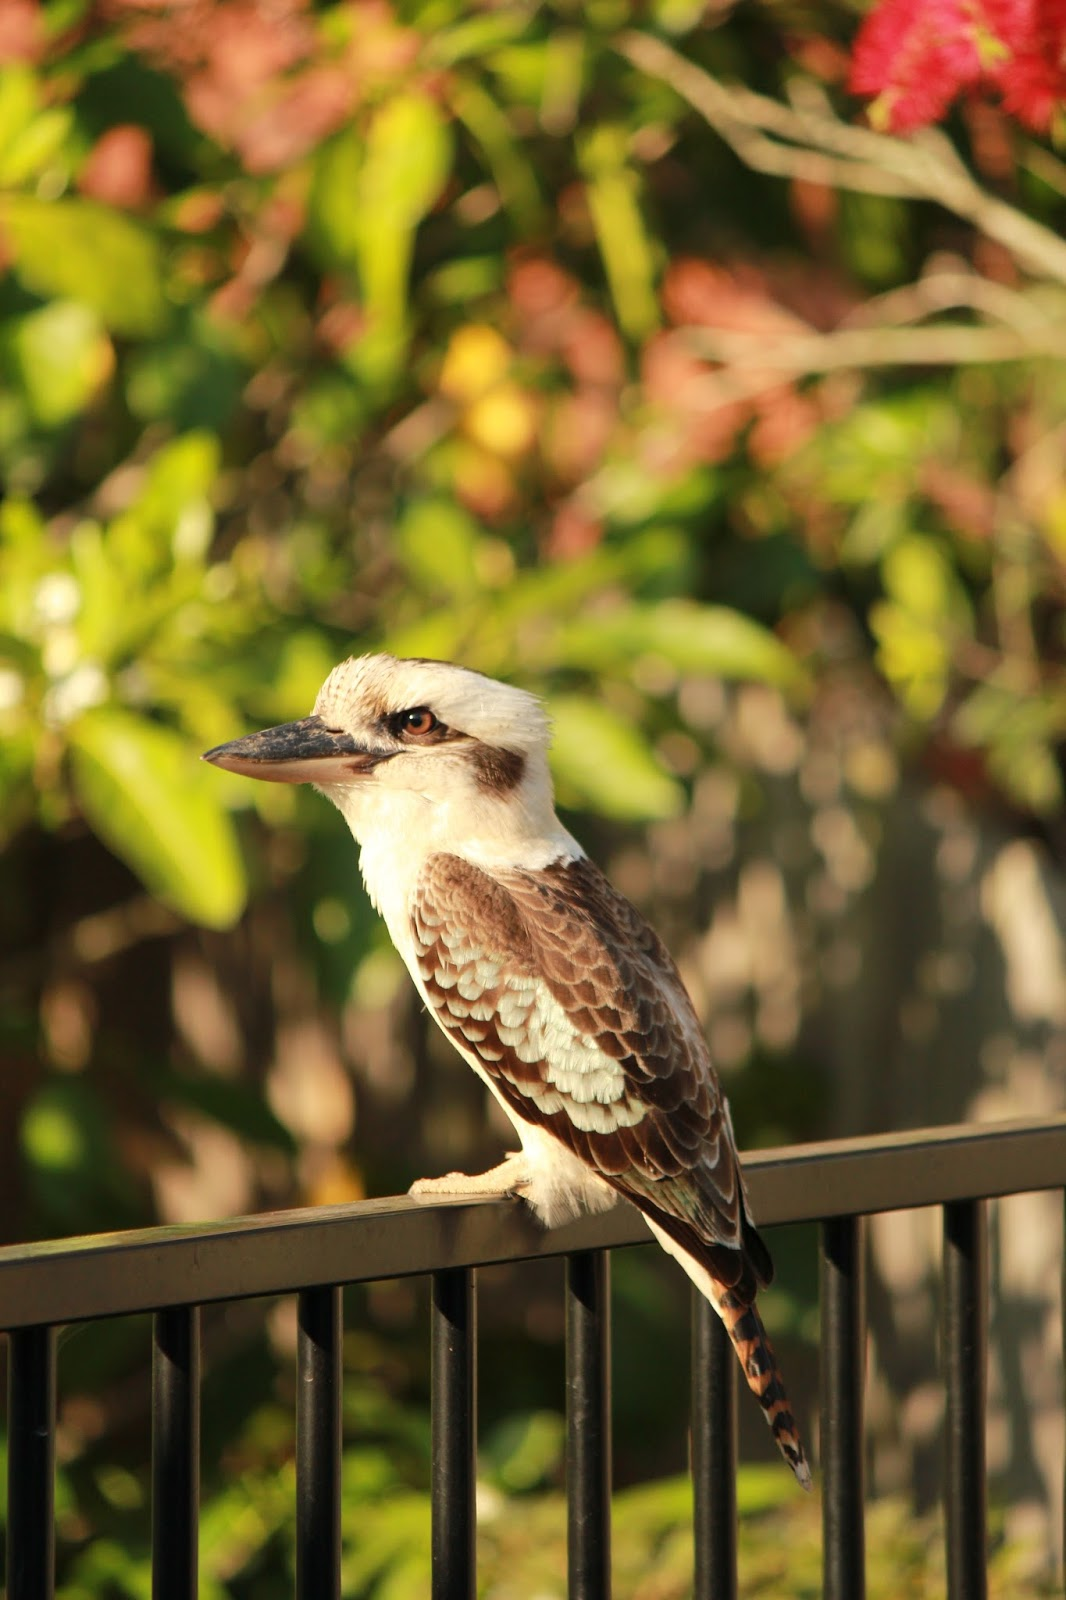 Picture of kookaburra bird at a park.